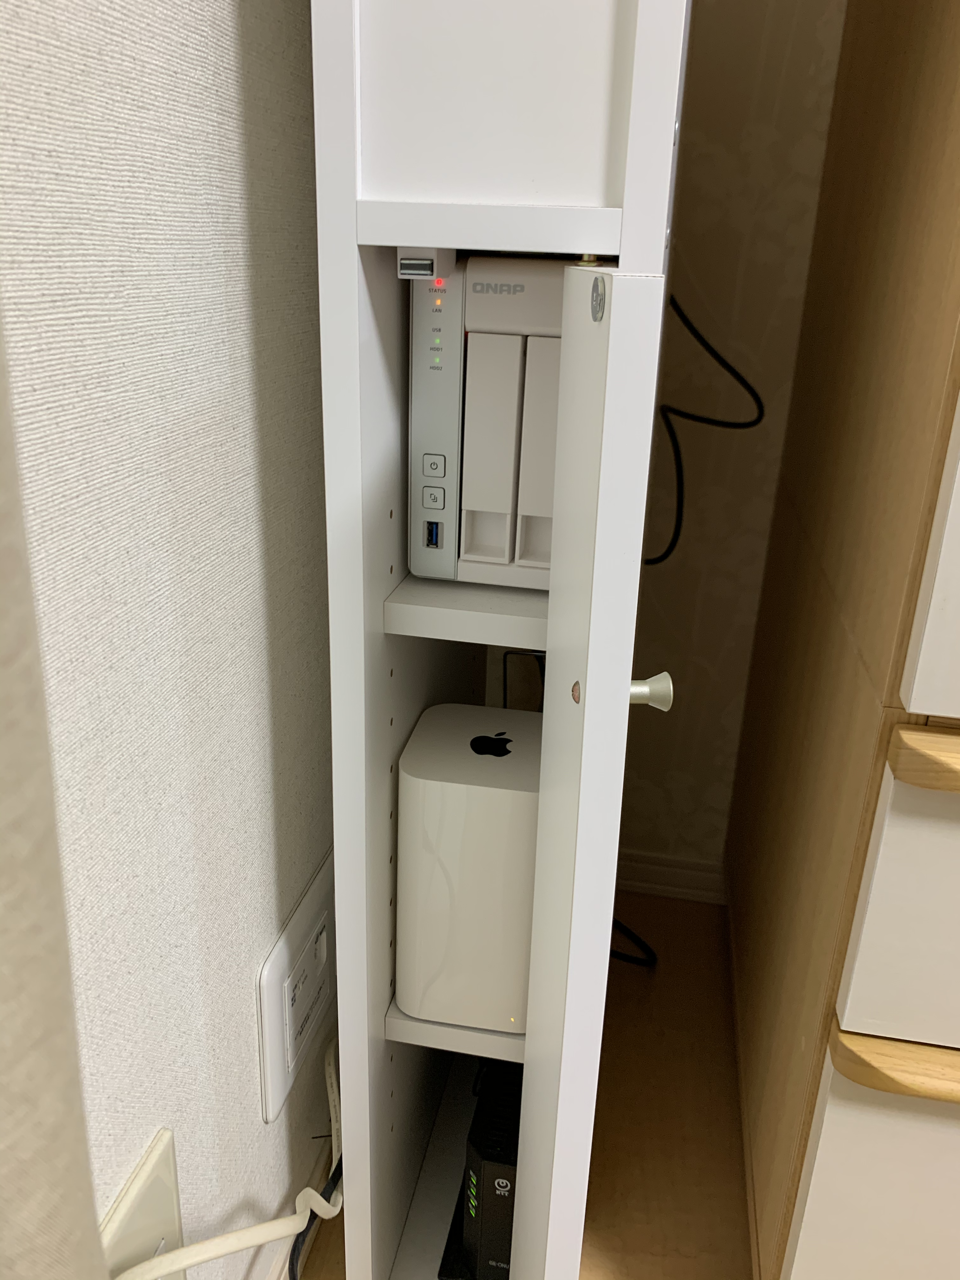 NAS 収納ボックス